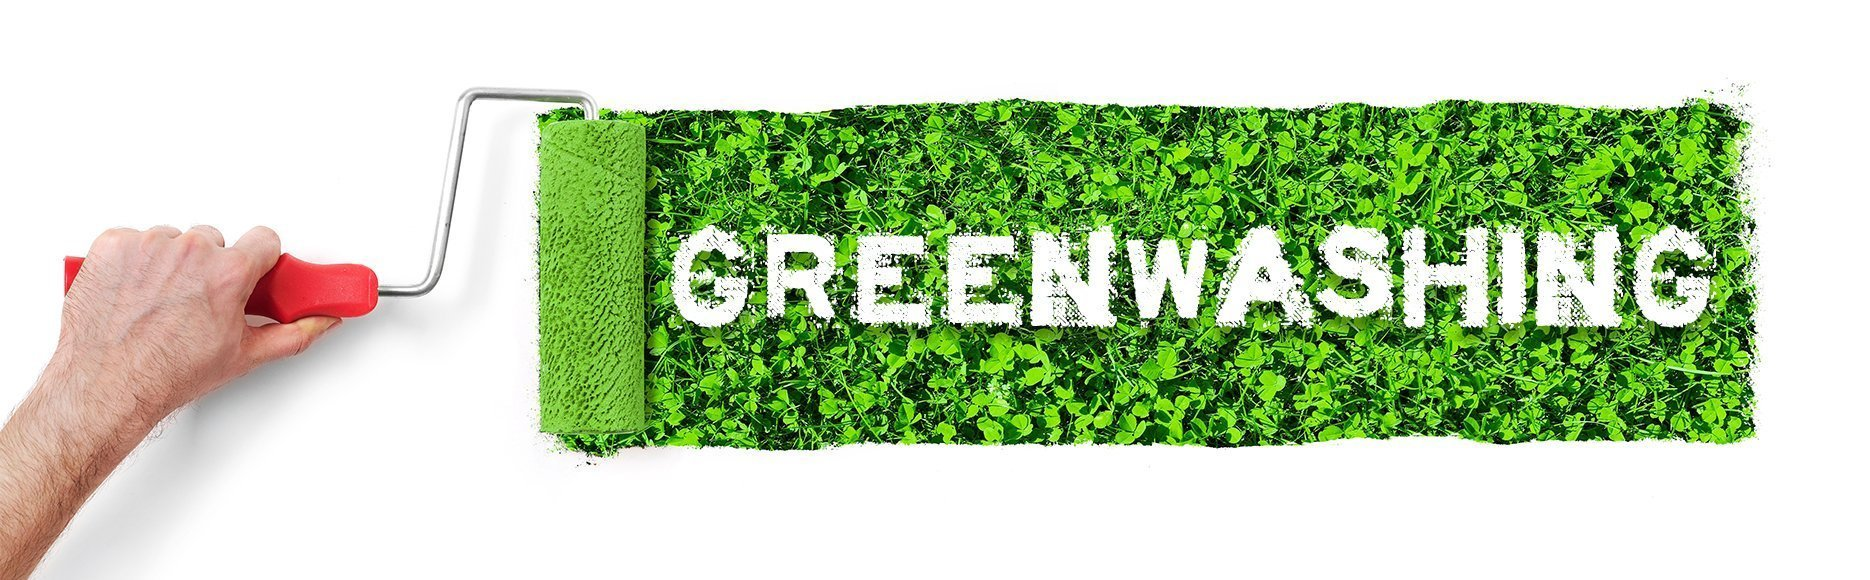 Genuine Green Cleaning being Abused by Greenwashing